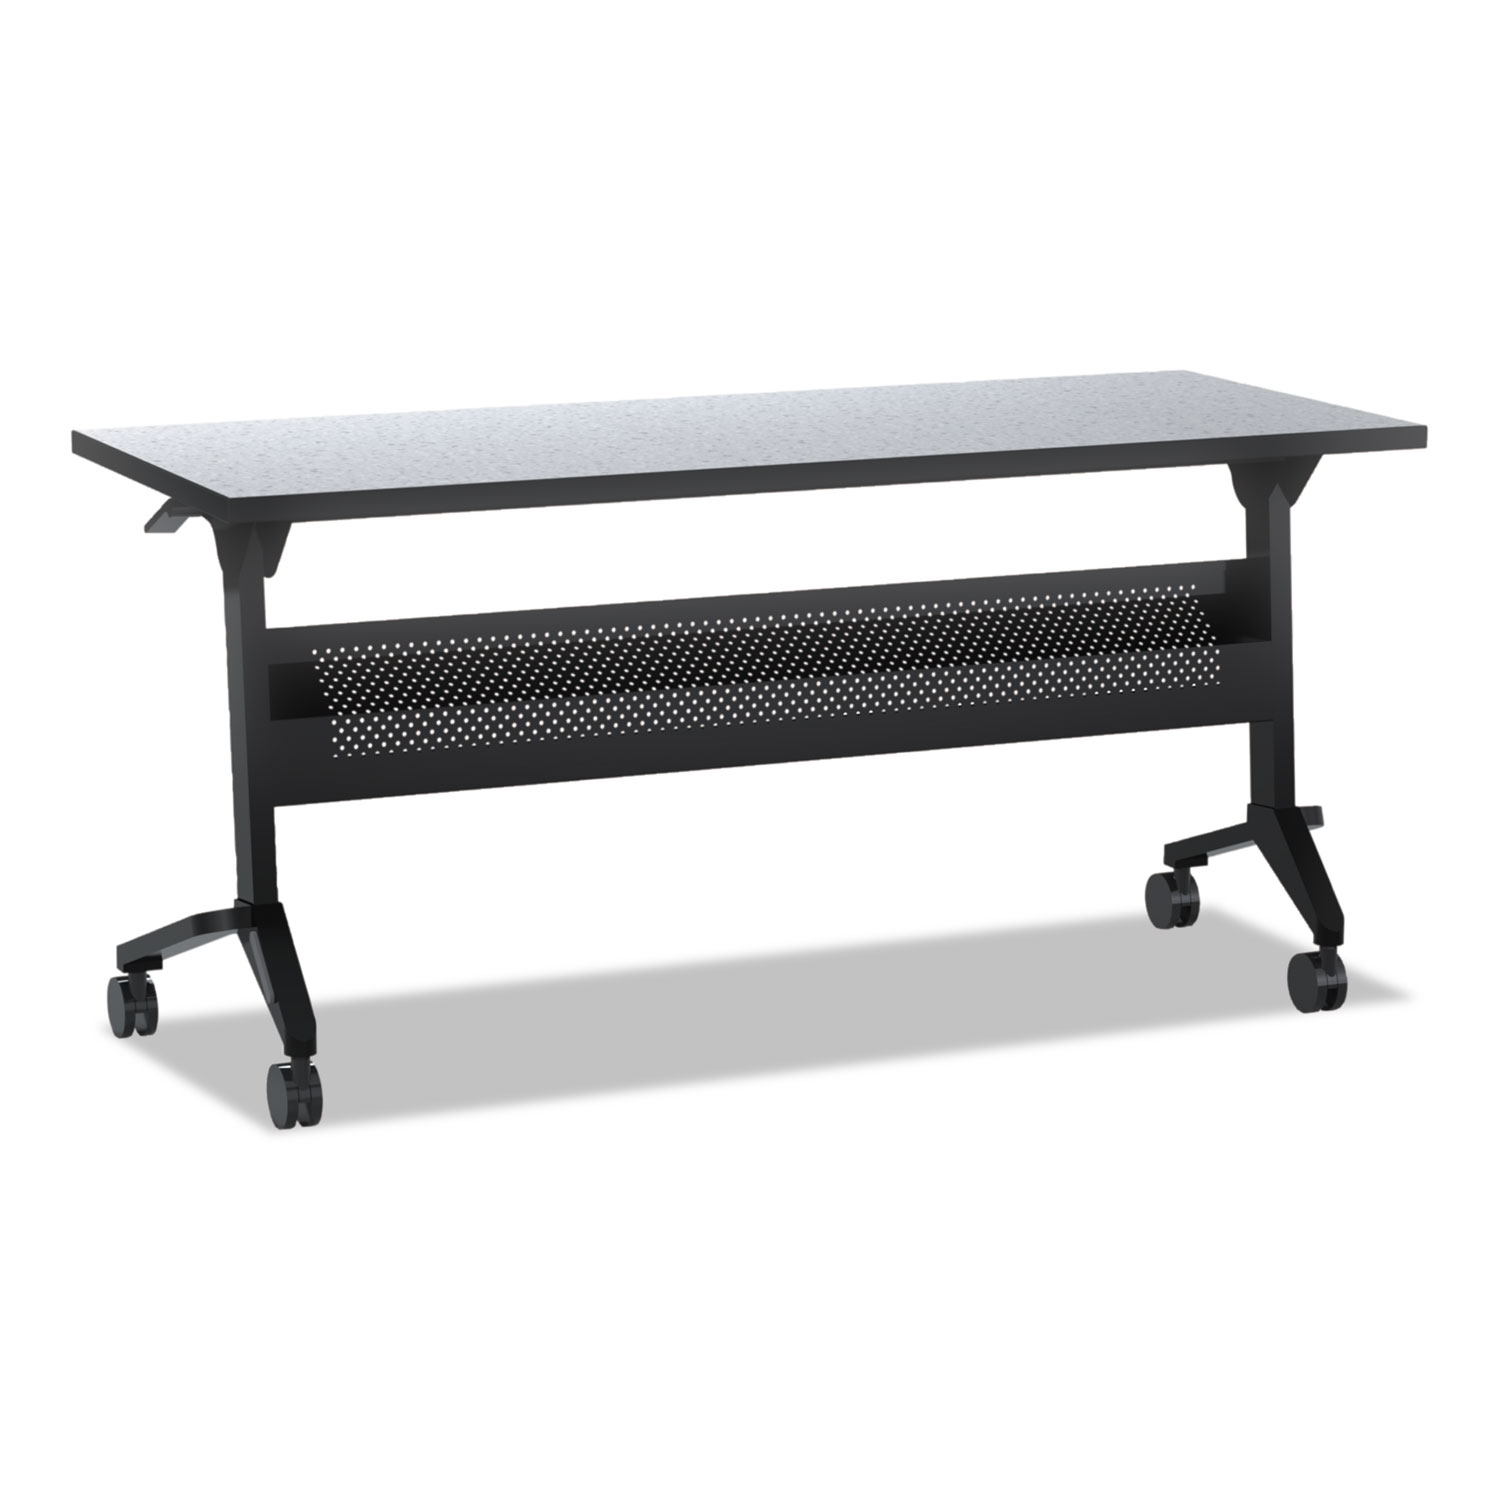 Flip-n-Go Table Top, 72w x 24d, Folkstone